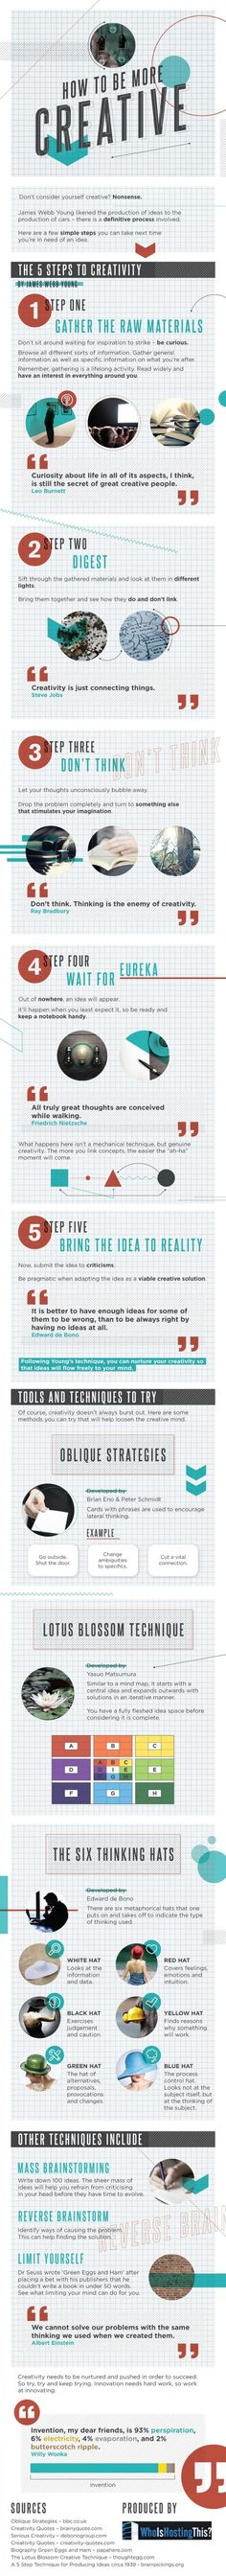 How To Be More Creative [infographic] - Daily Infographic